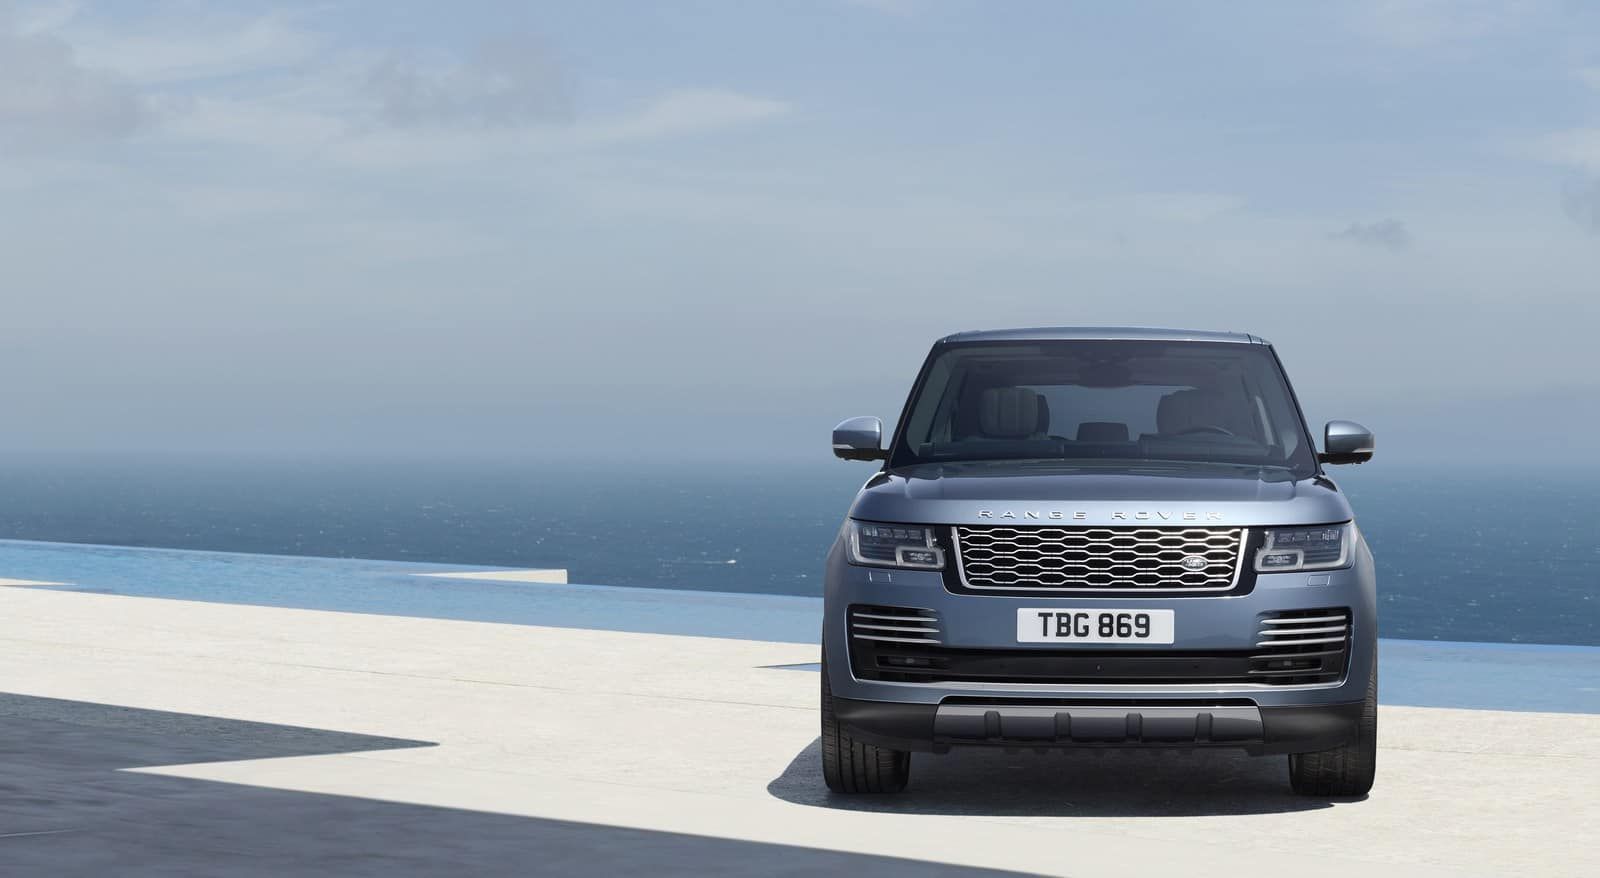 The Facelifted Range Rover comes with a Plug-in Hybrid Sibling